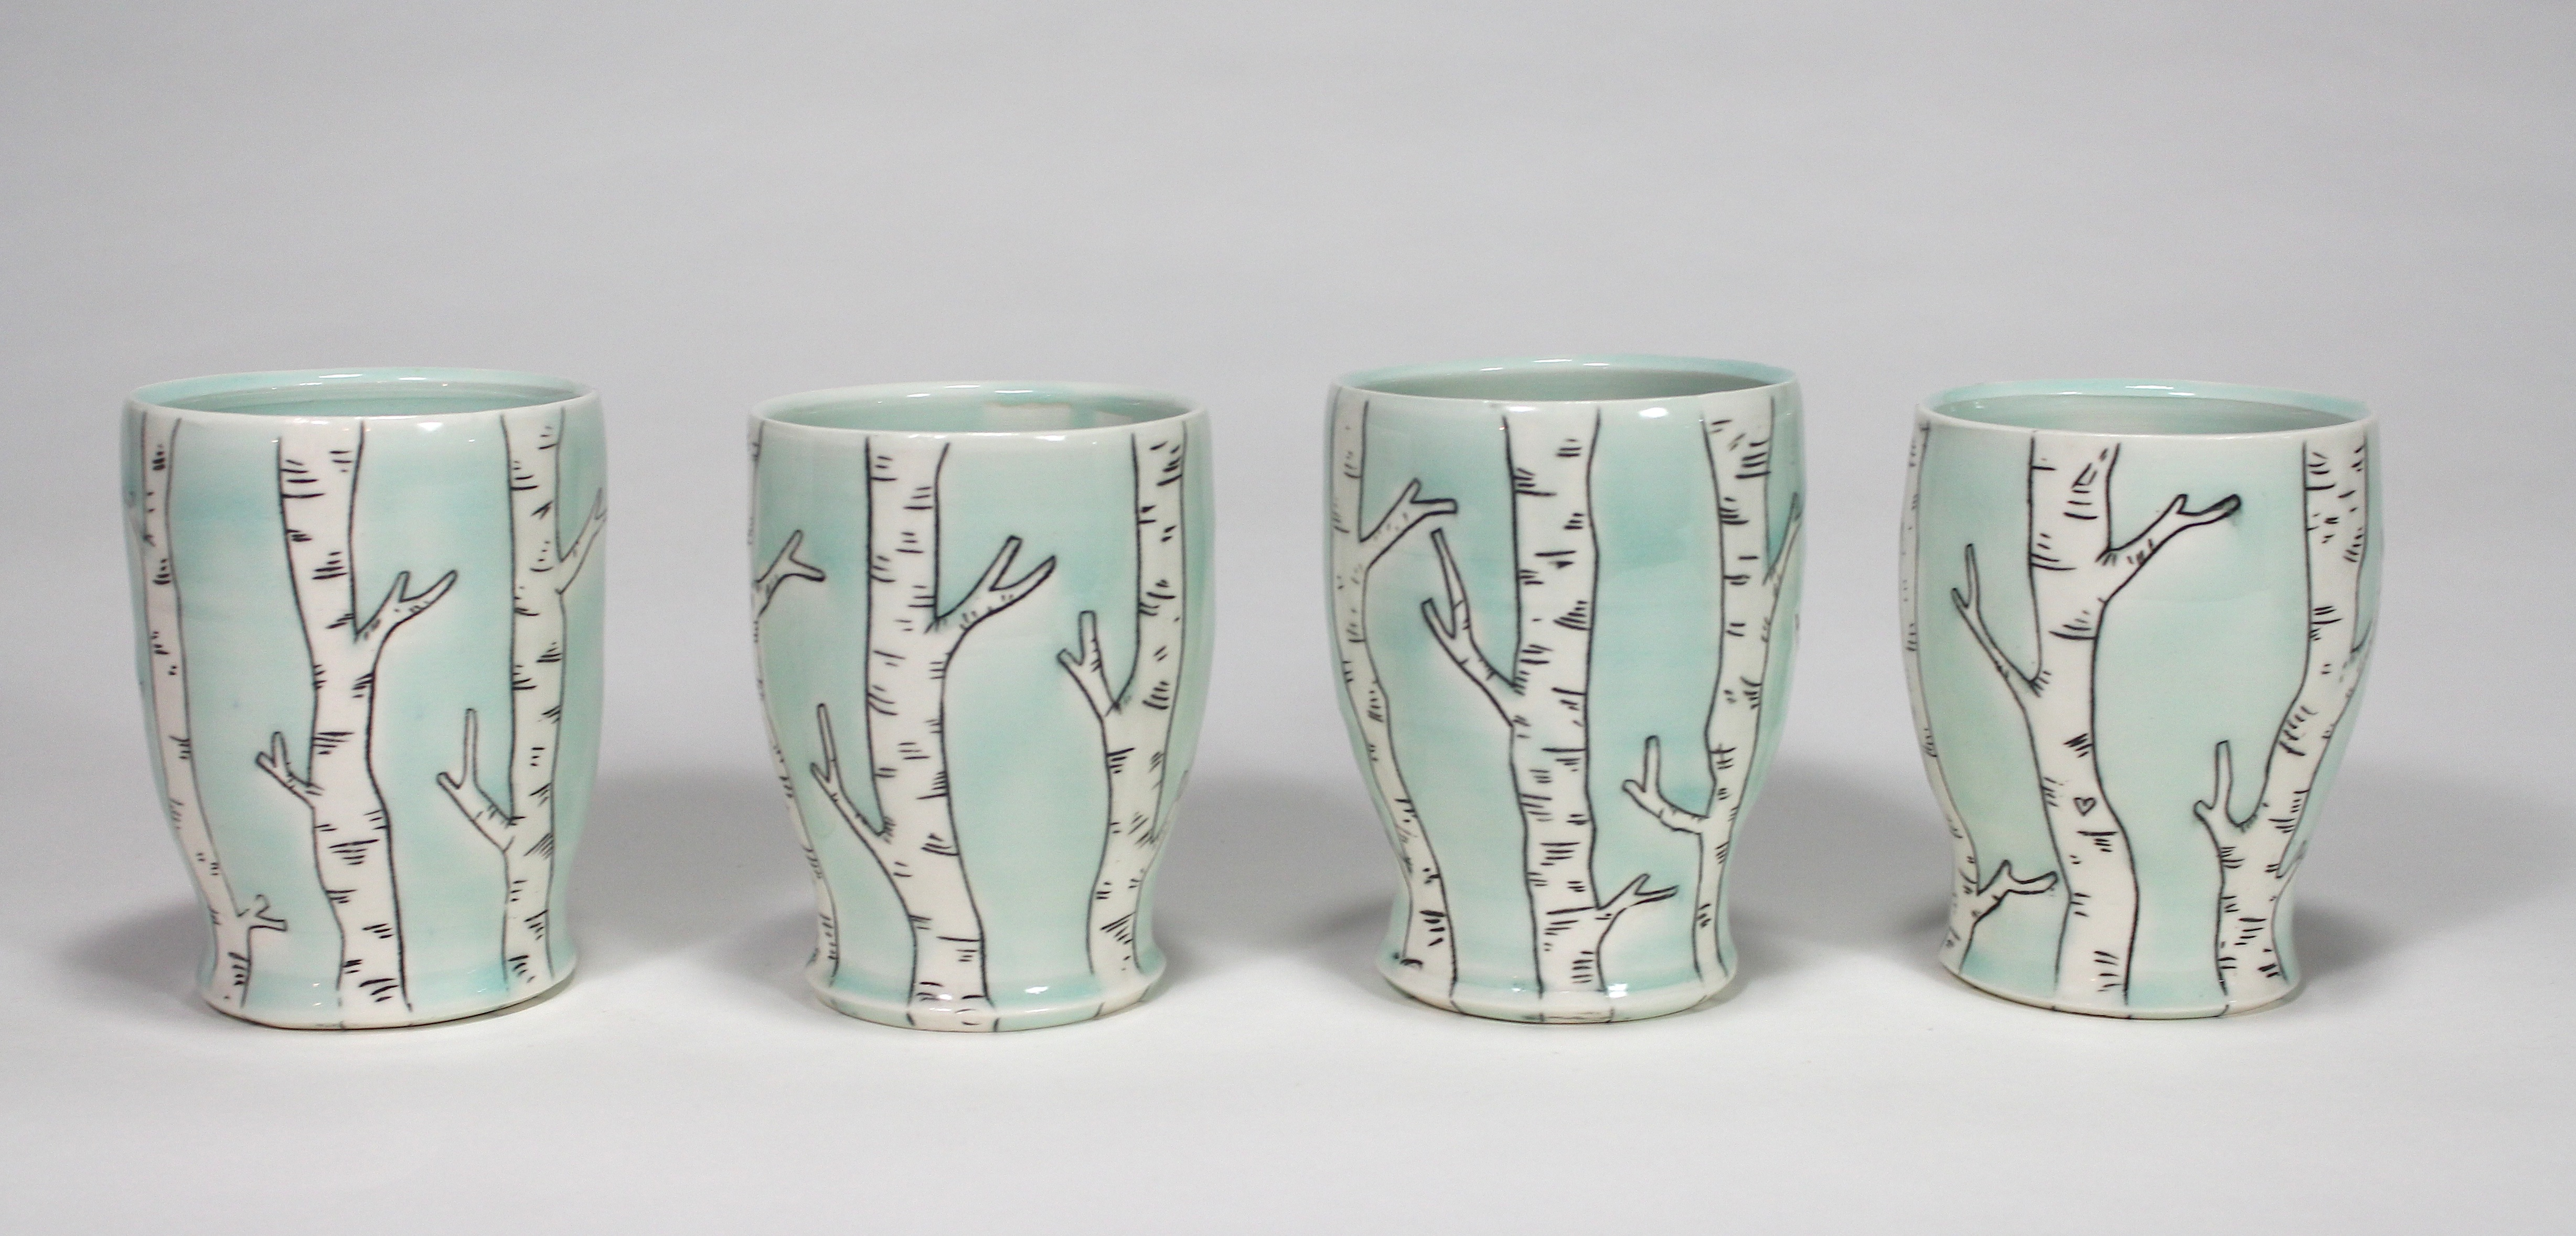 I was really pleased with the group of decals i ordered from forage studios mariko is a well known name in the ceramics community and not only was i